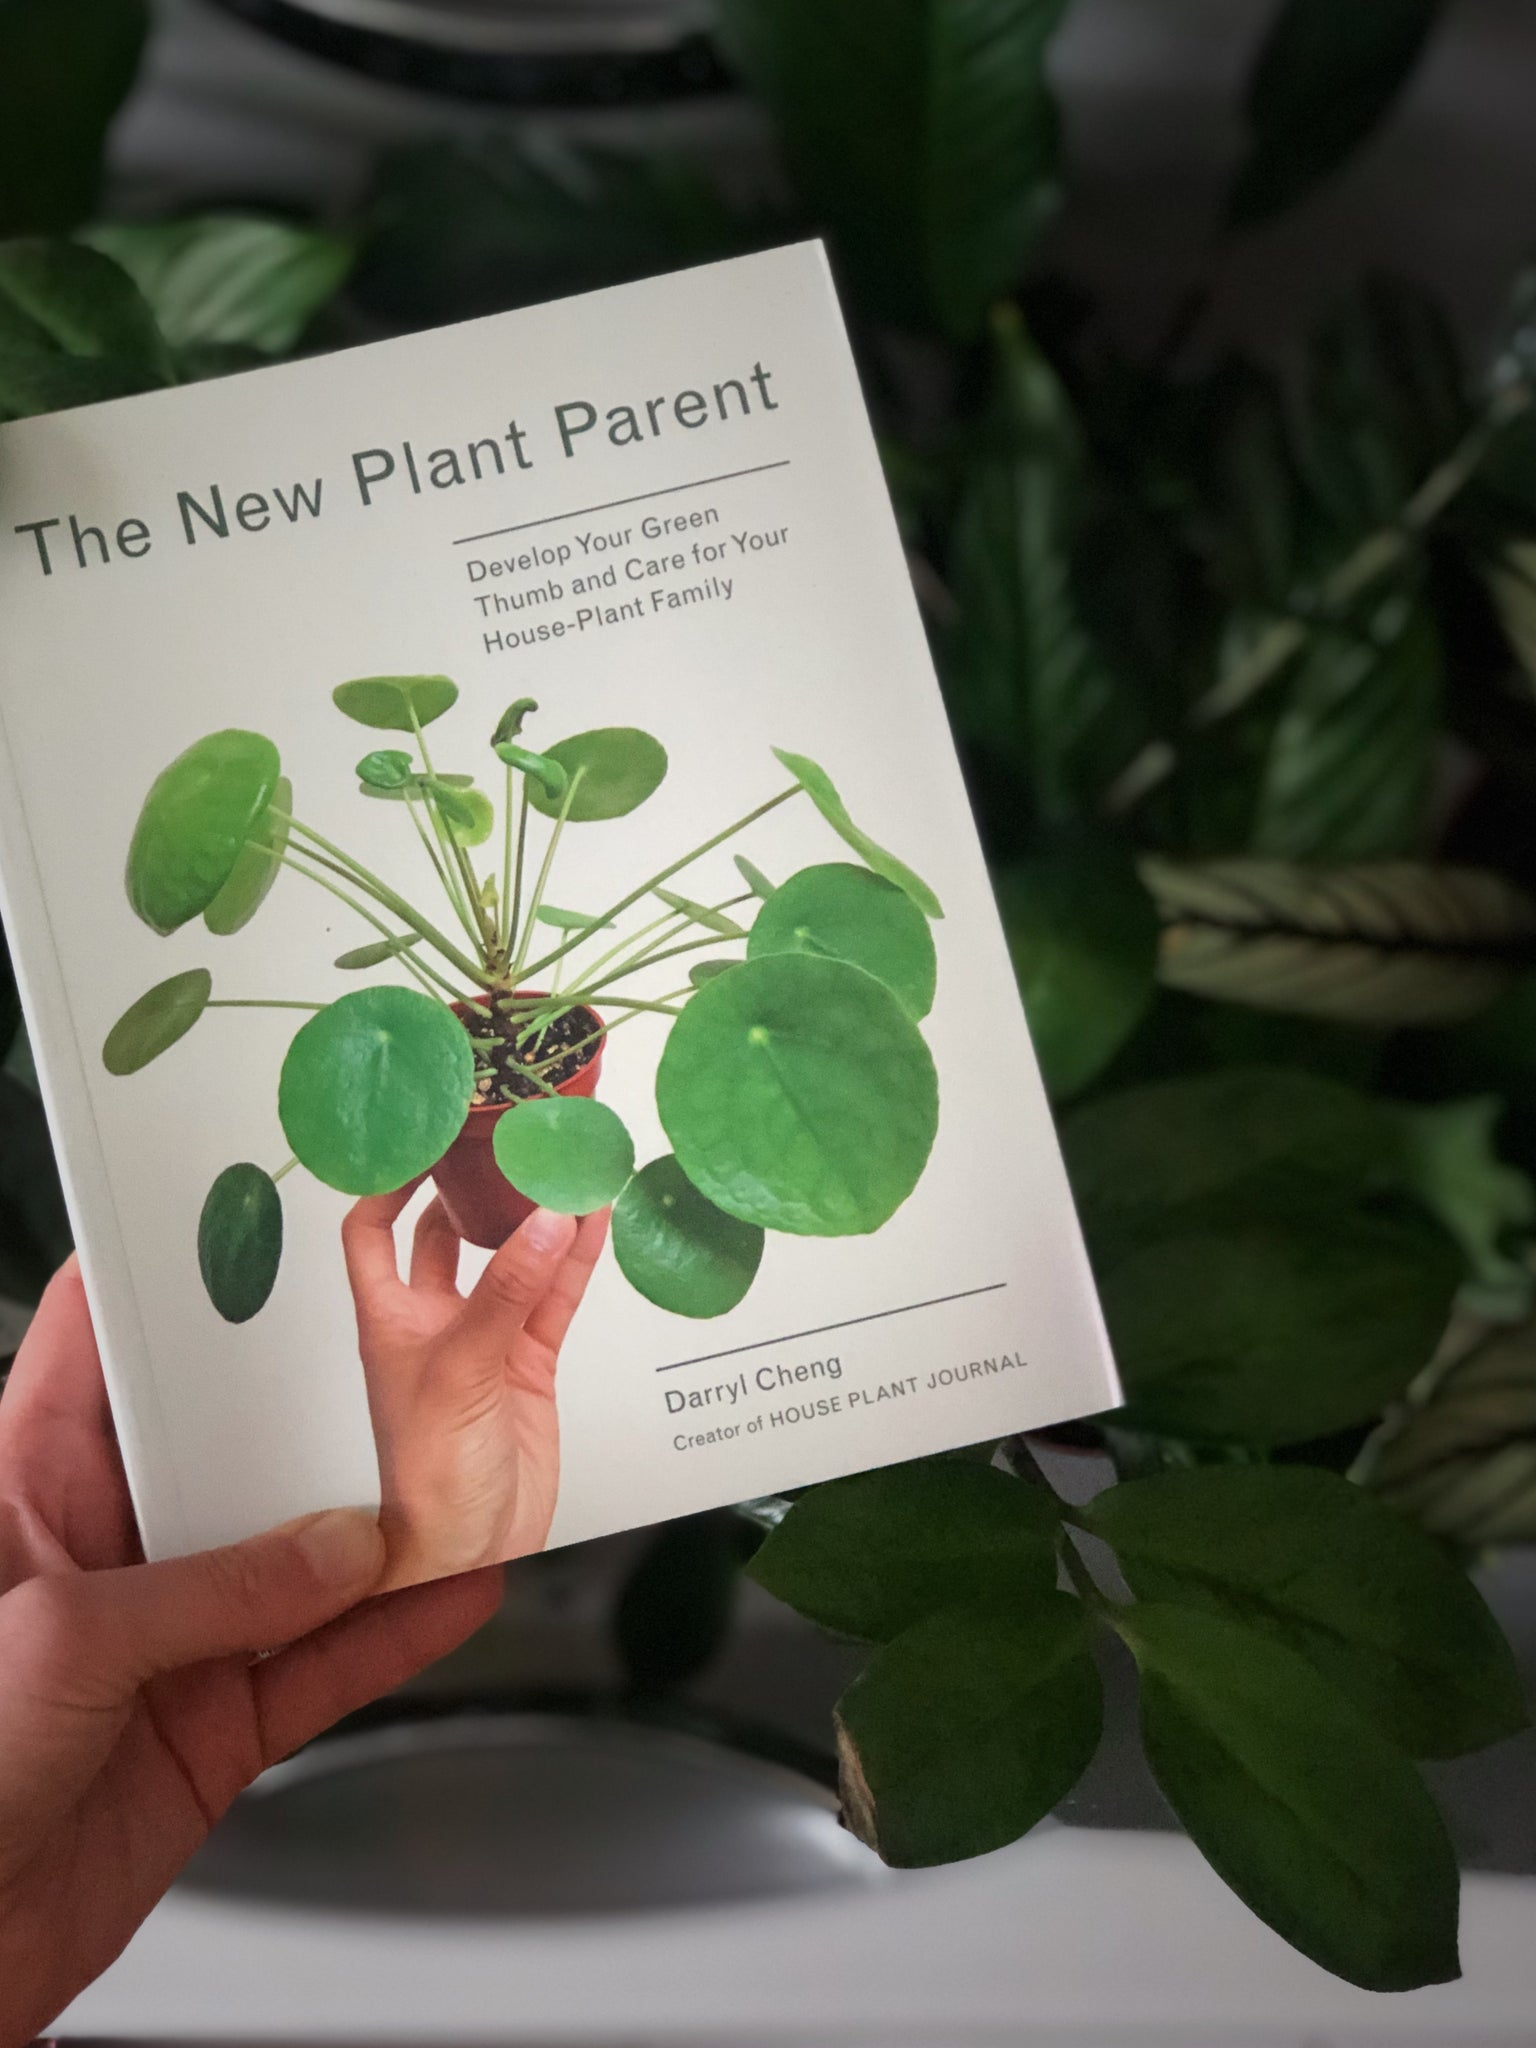 A white skinned hand holding a book called the New Plant Parent over a table covered in greenery.